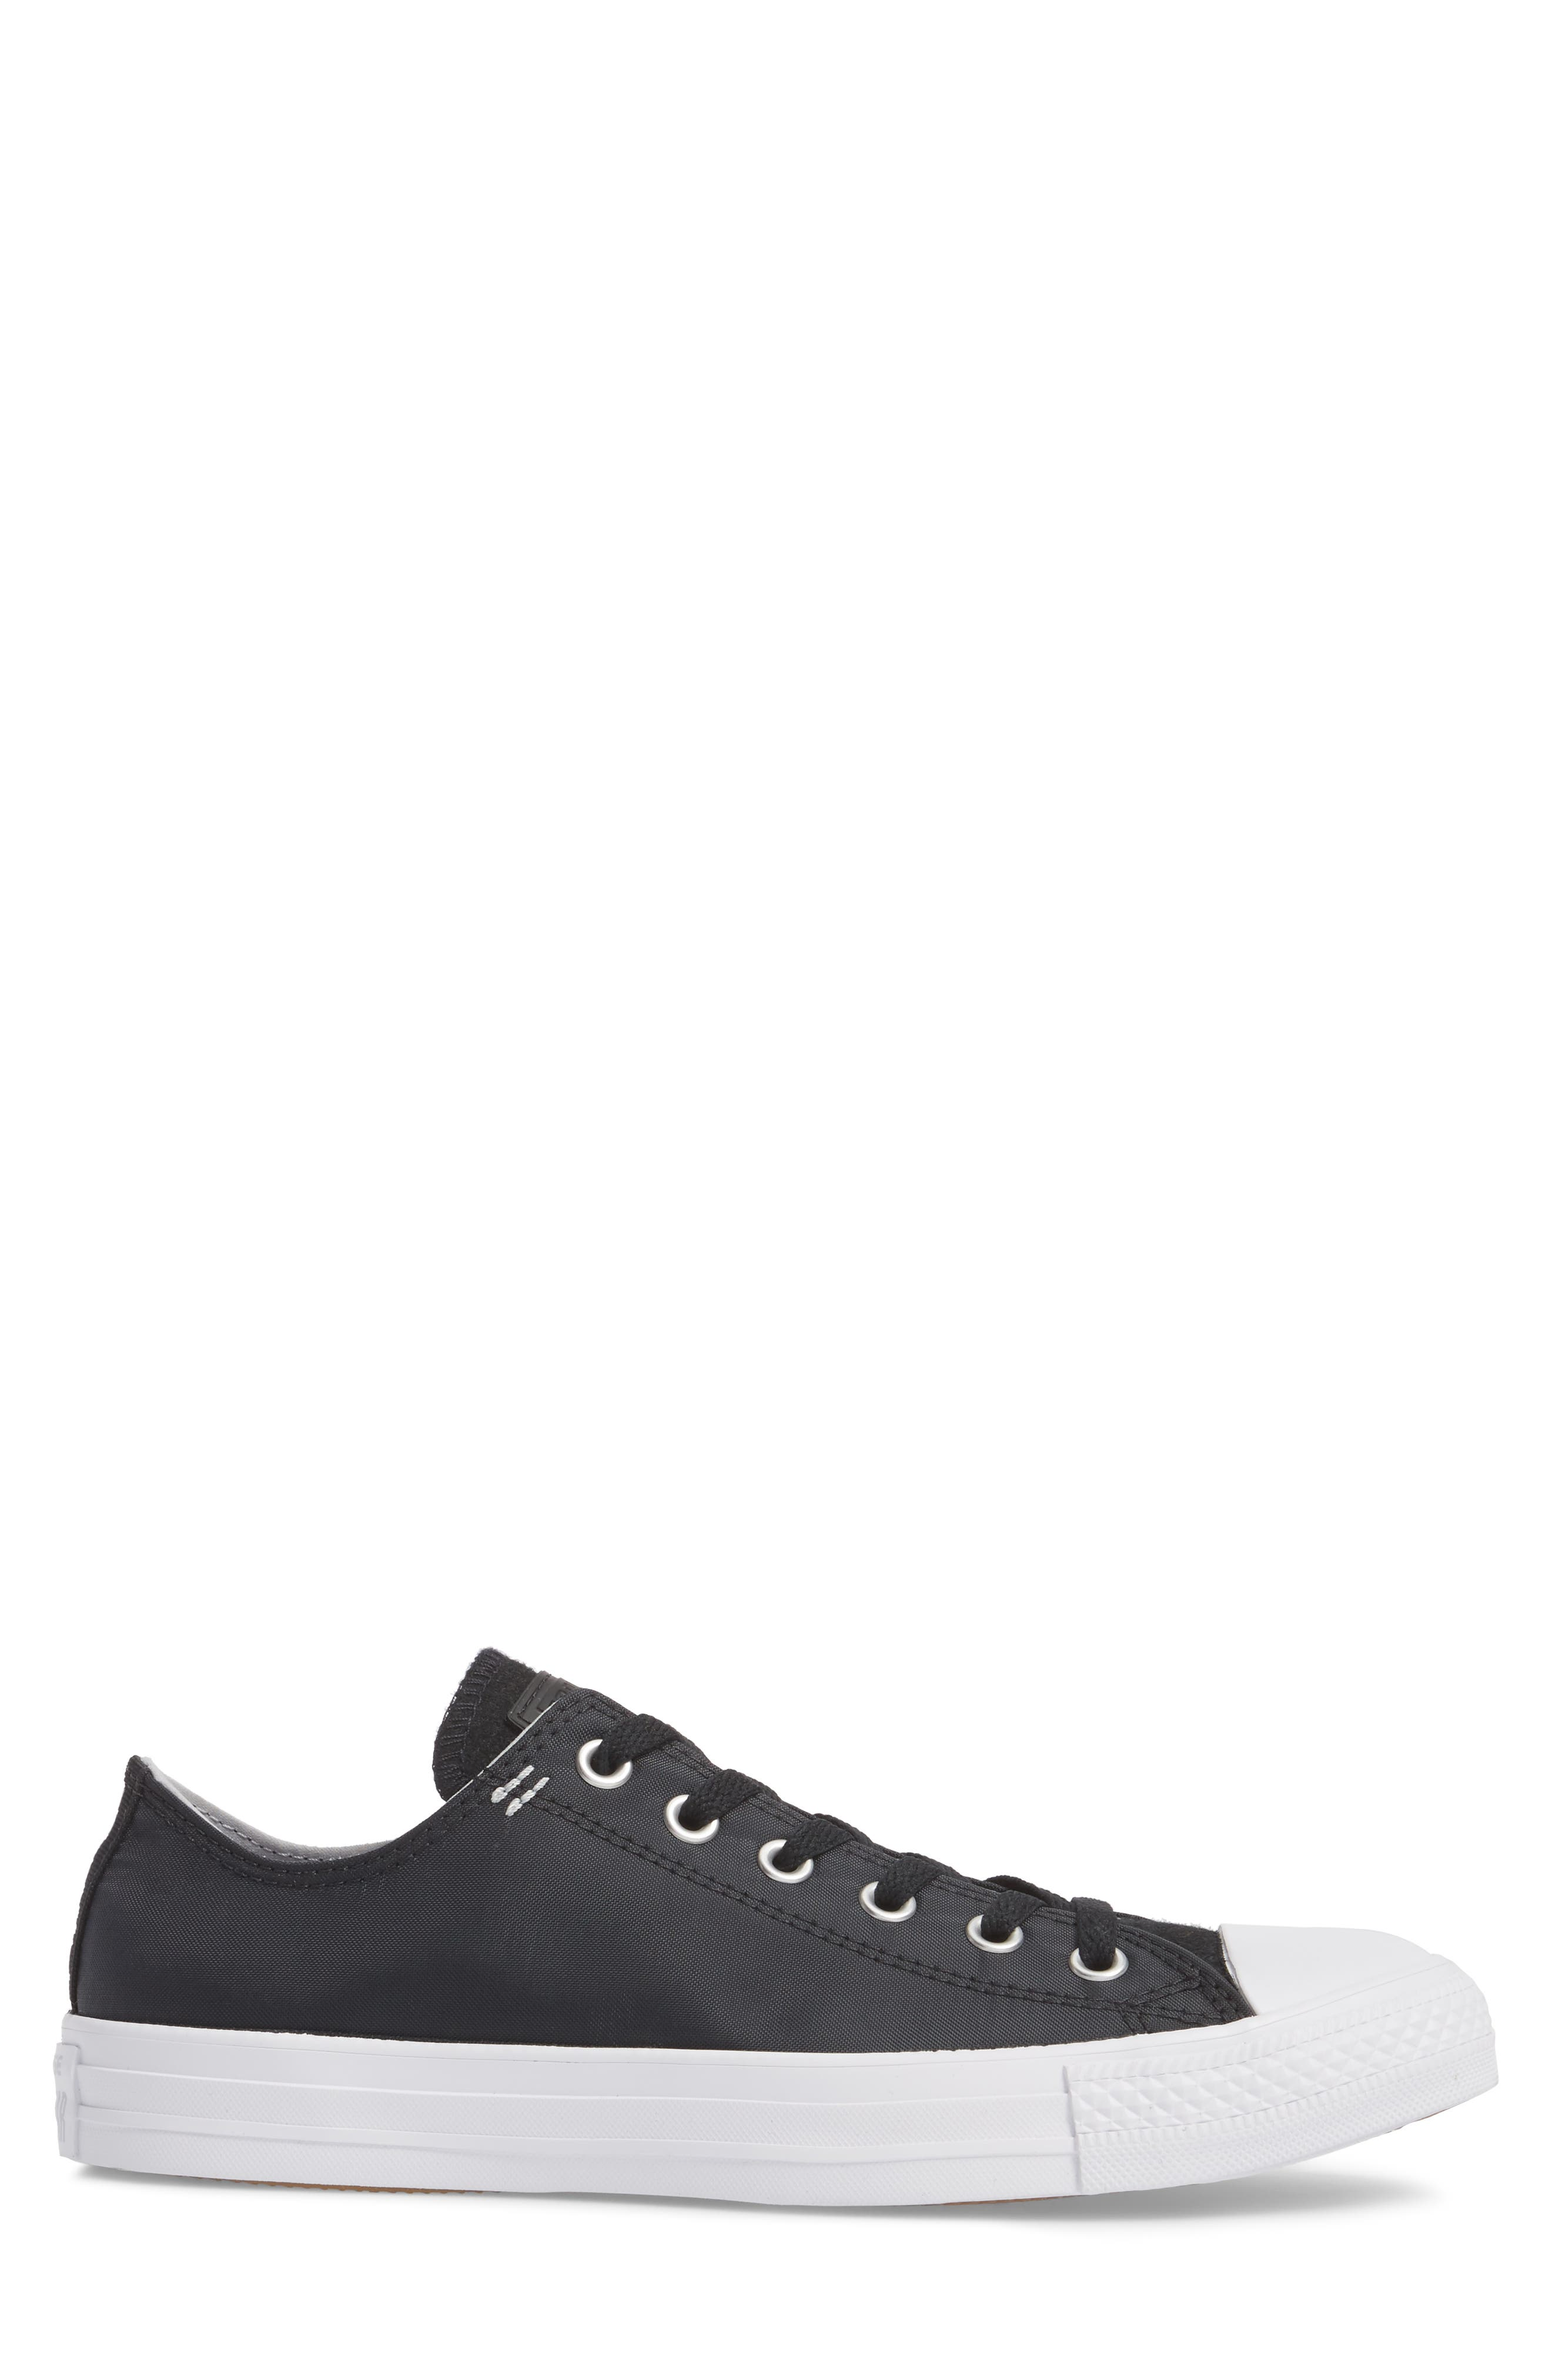 All Star<sup>®</sup> OX Low Top Sneaker,                             Alternate thumbnail 3, color,                             Black